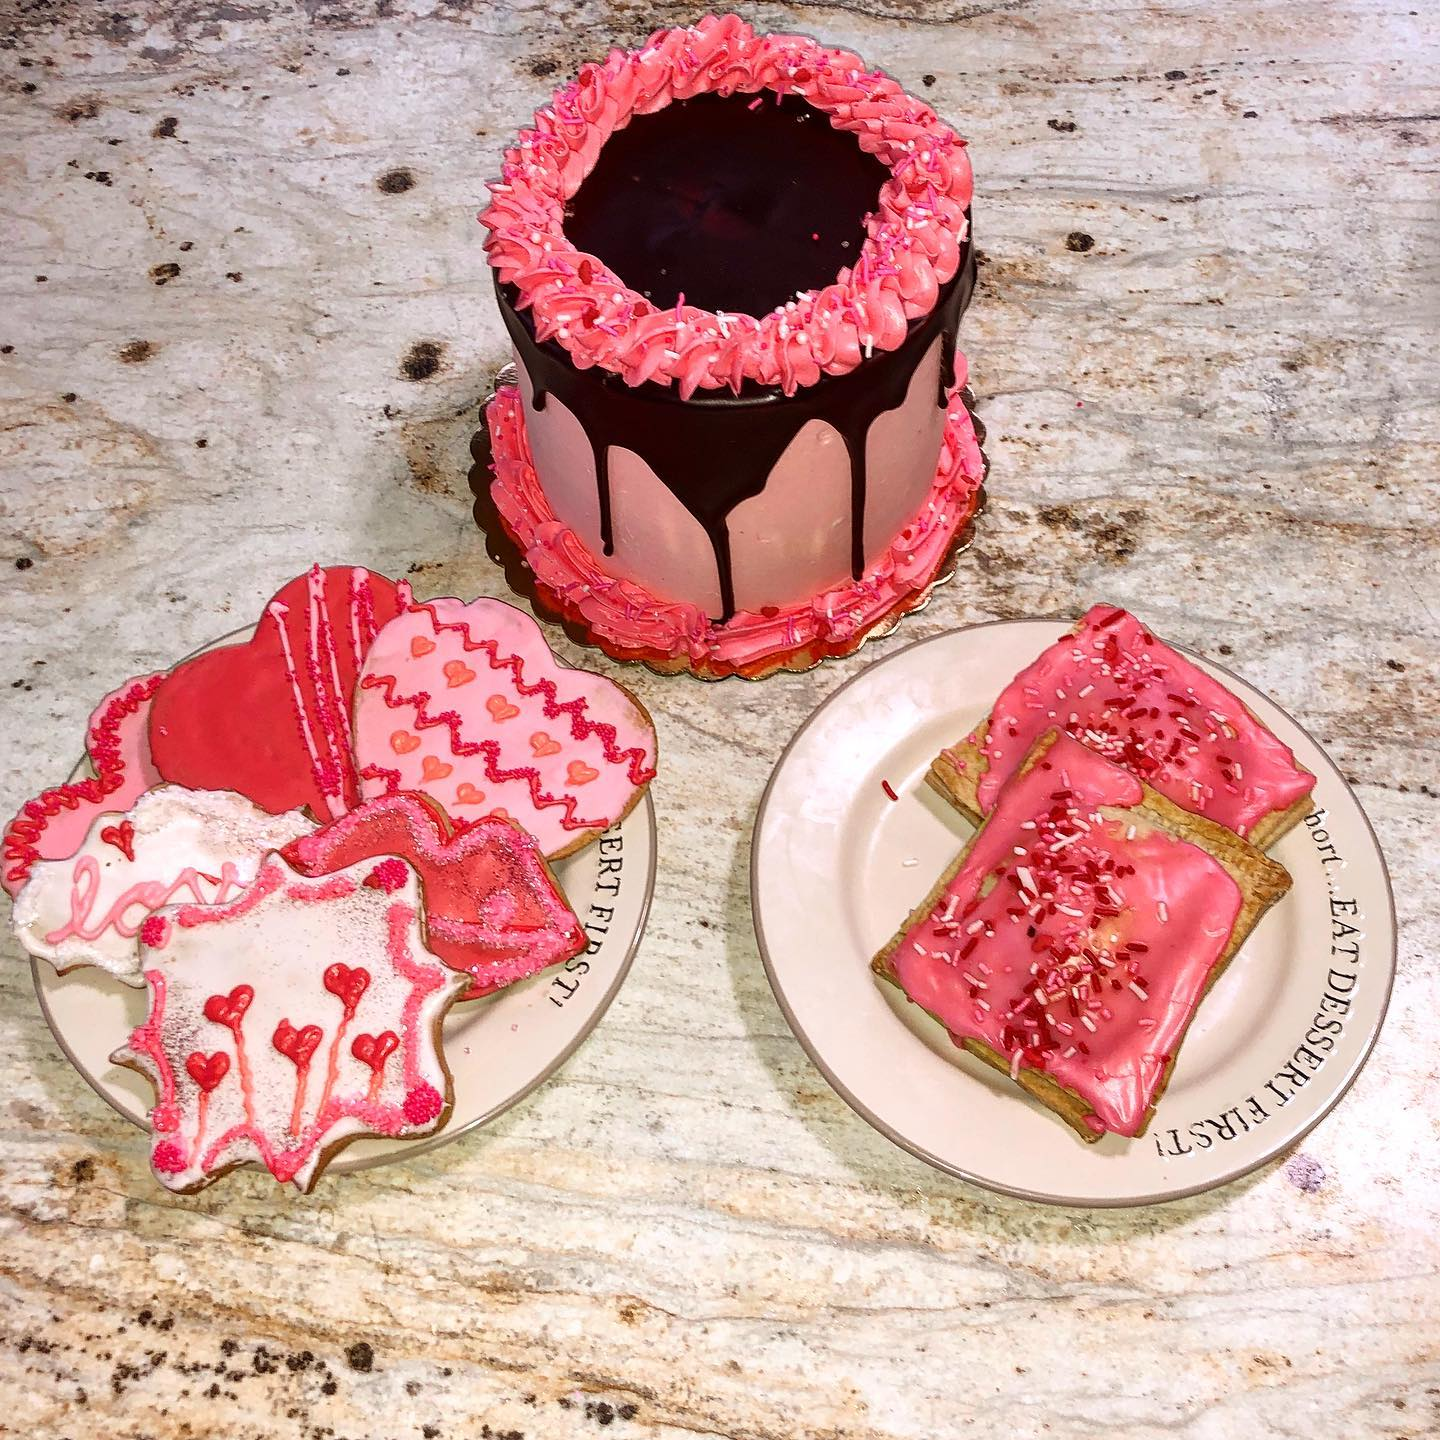 valentine's day themed pastries and cakes